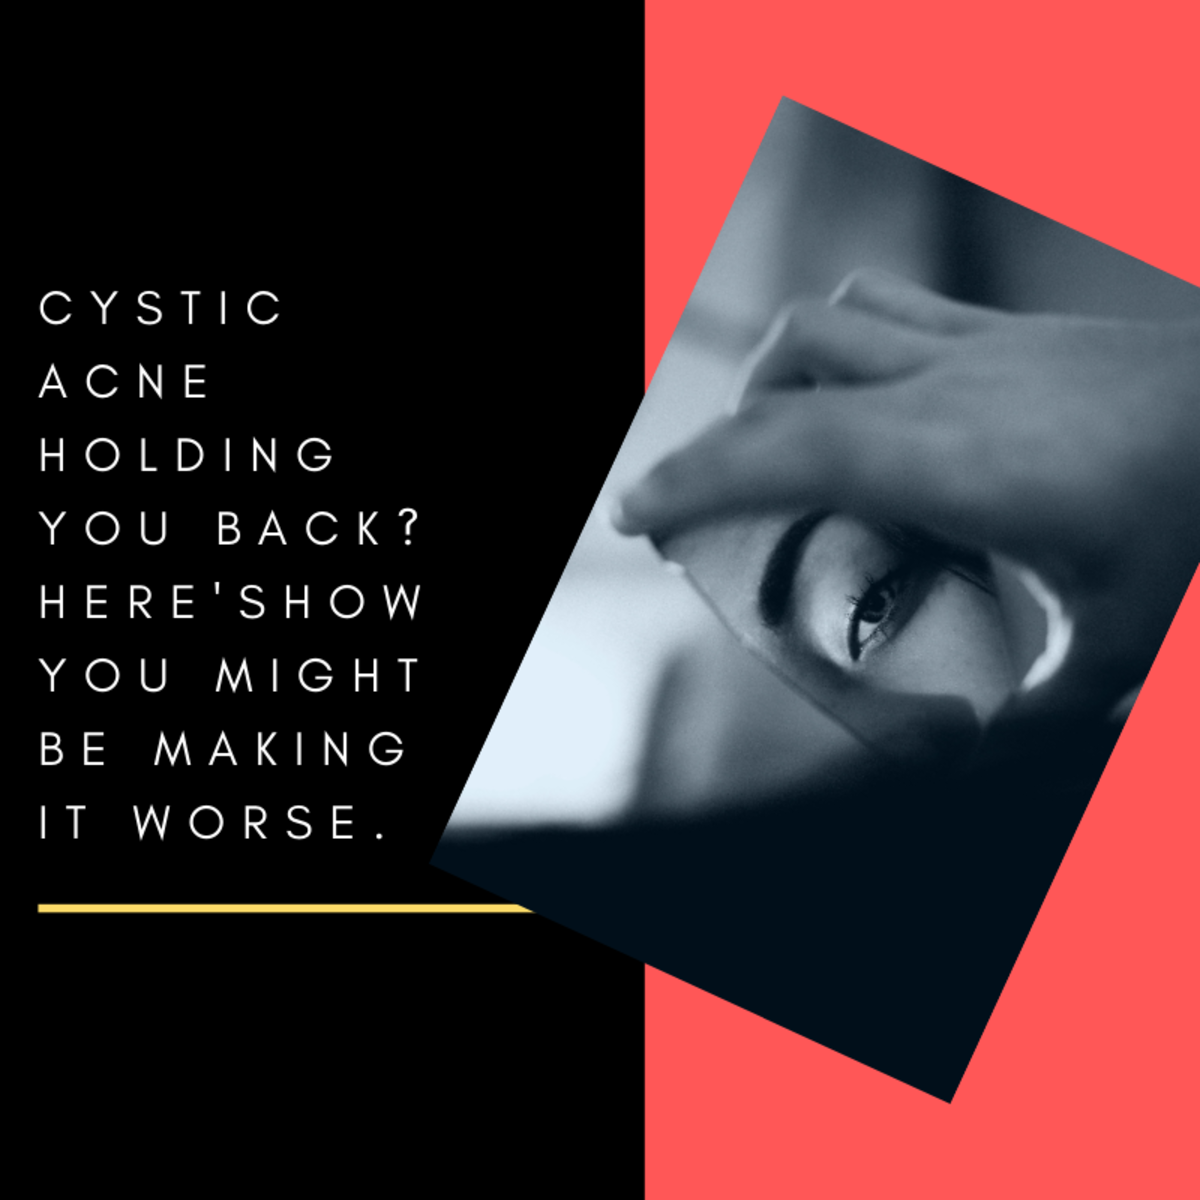 Don't let cystic acne hold you back. Here's tips on how you can lessen its impact.